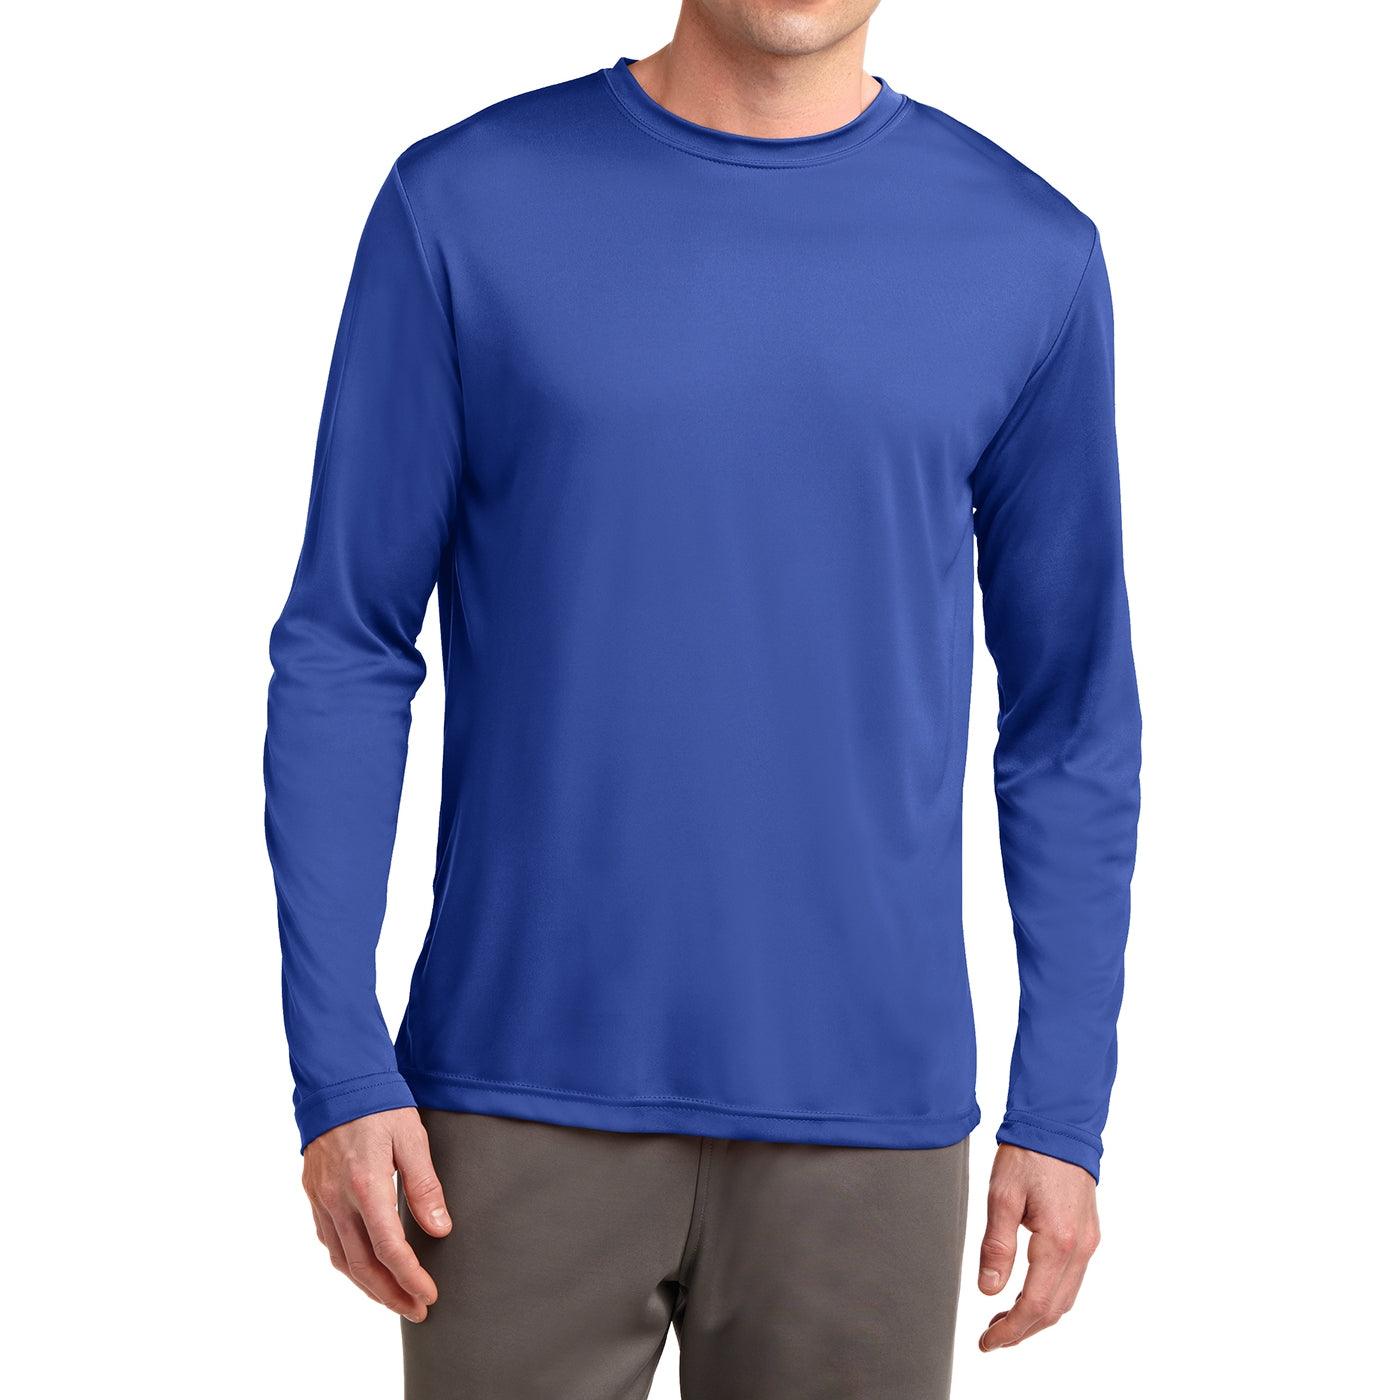 Men's Long Sleeve PosiCharge Competitor Tee - True Royal